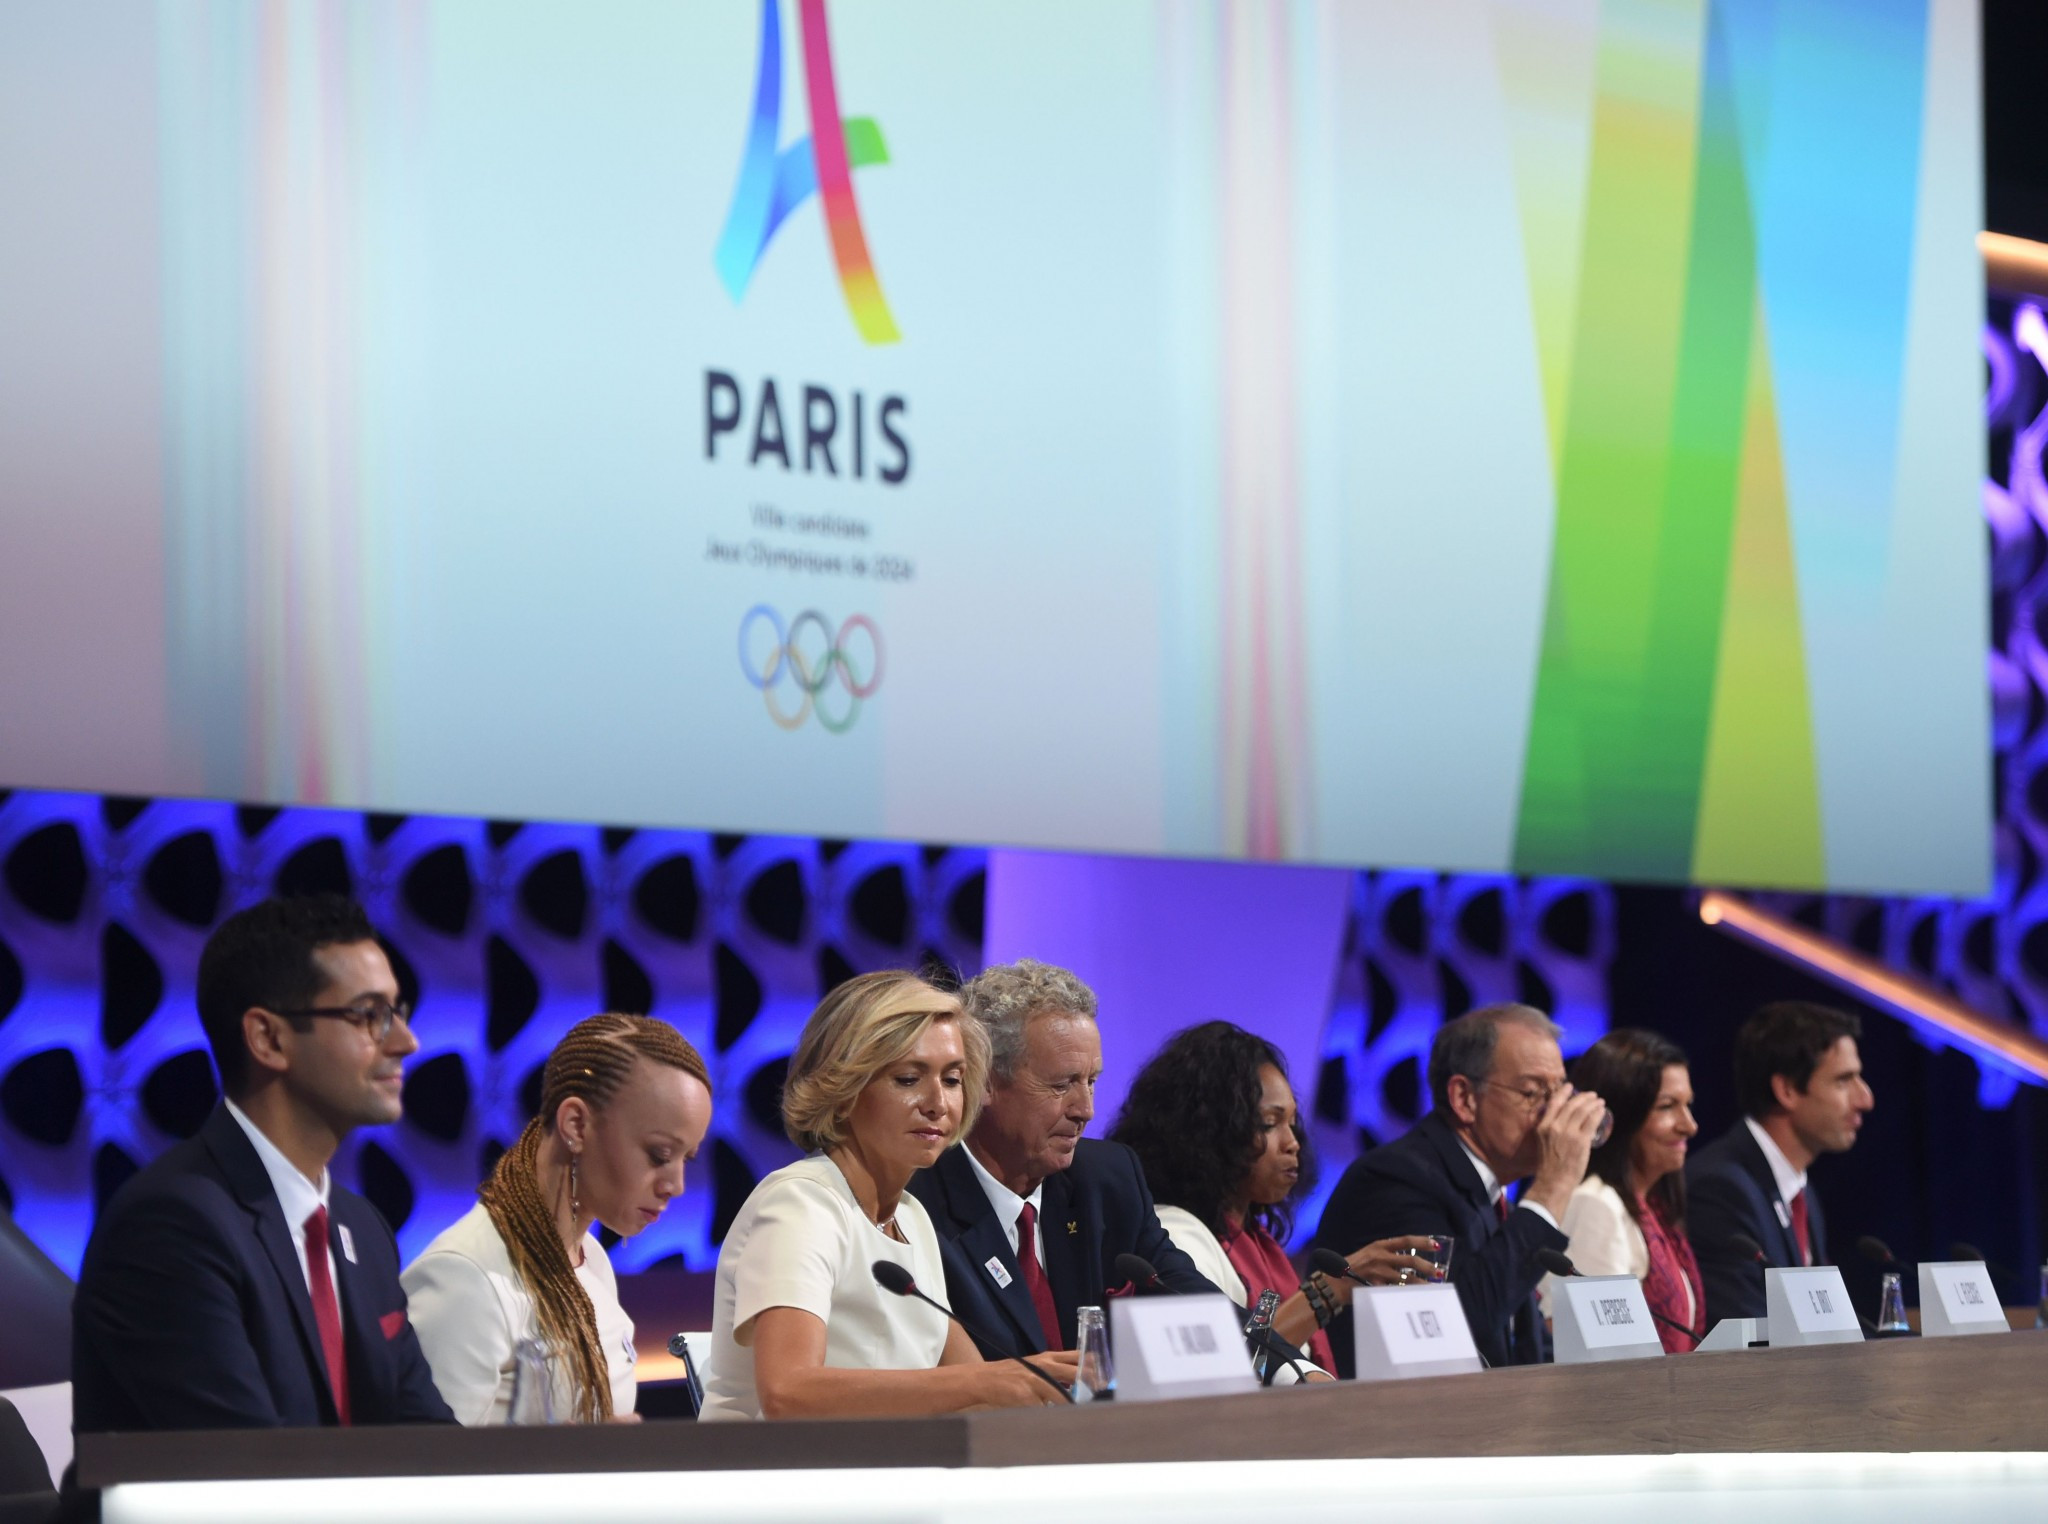 Hosting 2024 Olympics will help reinvention of Paris promises Mayor